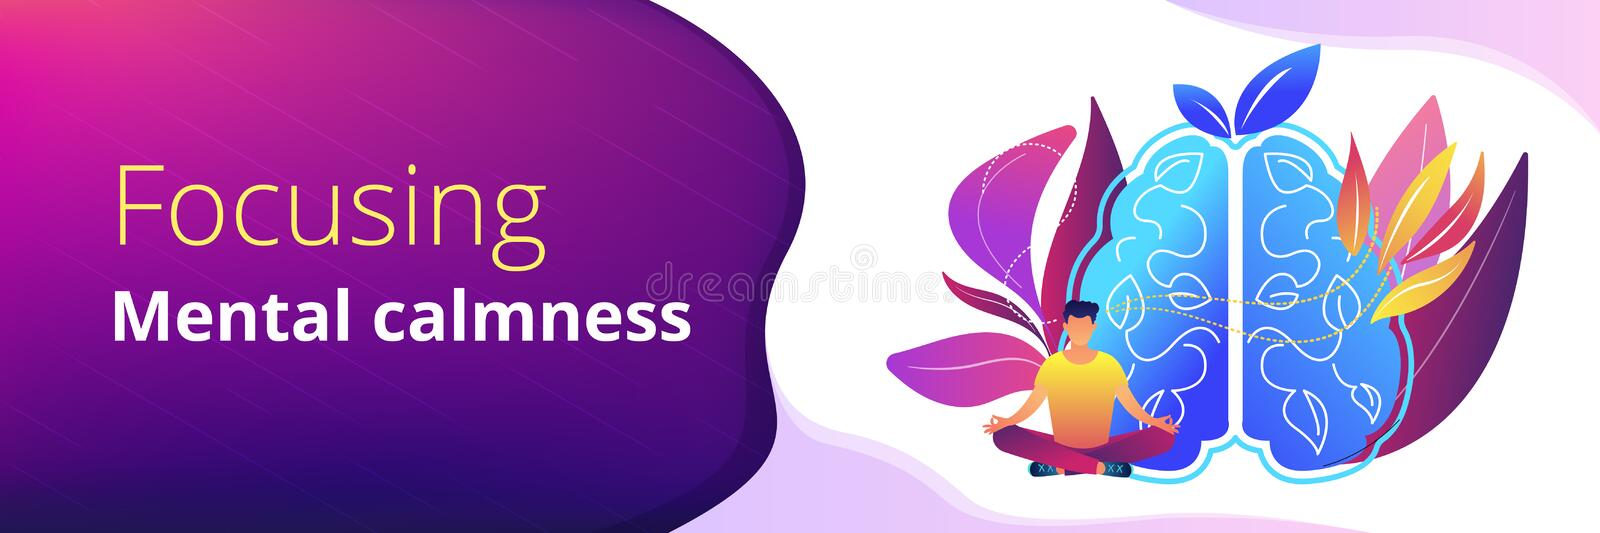 Calmness and releasing stress concept header banner. royalty free illustration